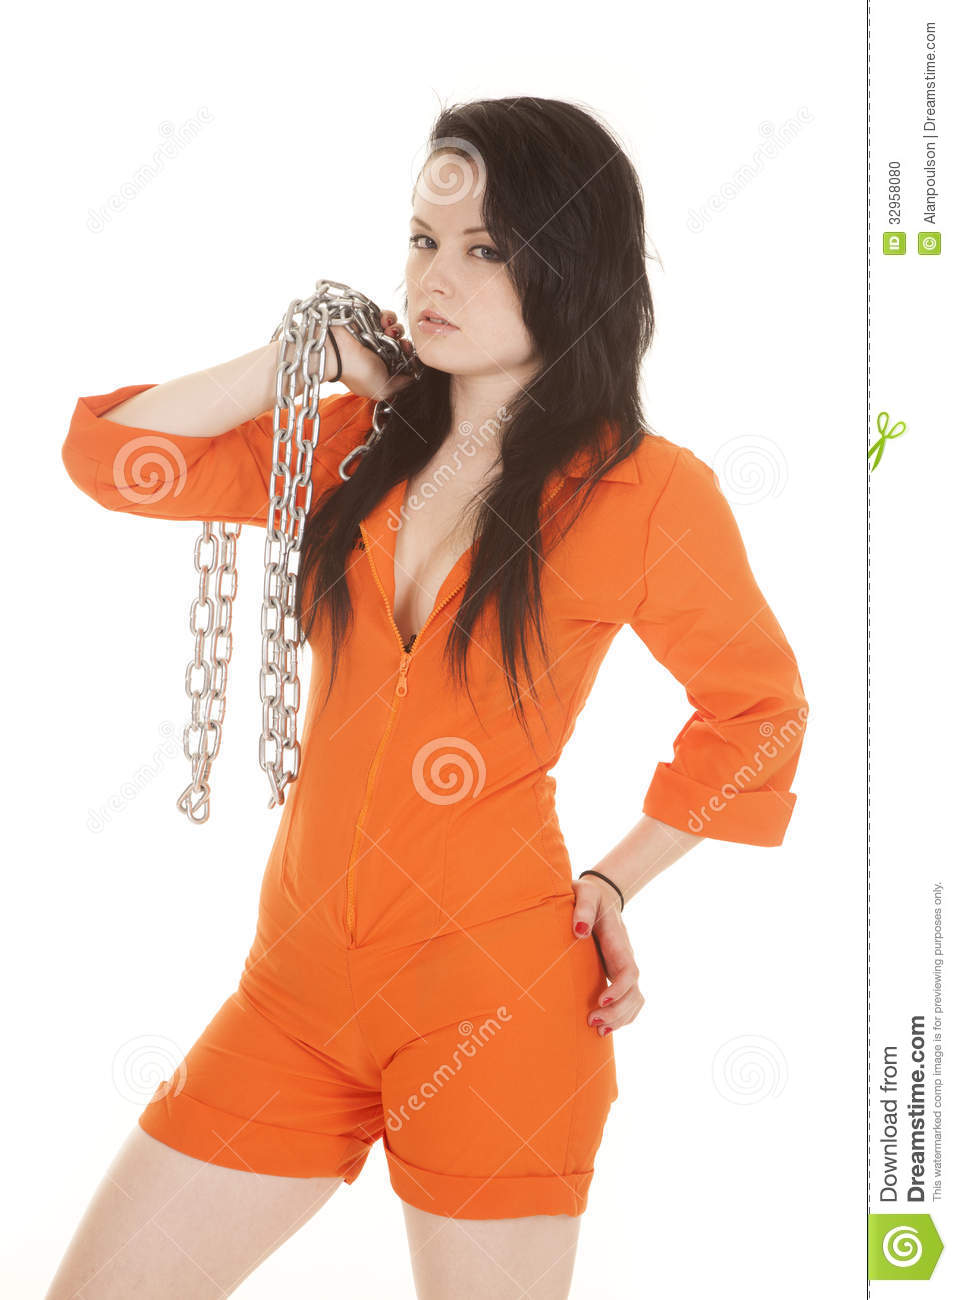 Excellent Its True What They Say  Orange Is The New Black  If Youre Looking At Being Bad, Then Youd Better Be Ready To Wear This Womens Prison Jumpsuit And Pay The Price Just Dont Let Any REAL Cops See You, Or You Might Have Some Explaining